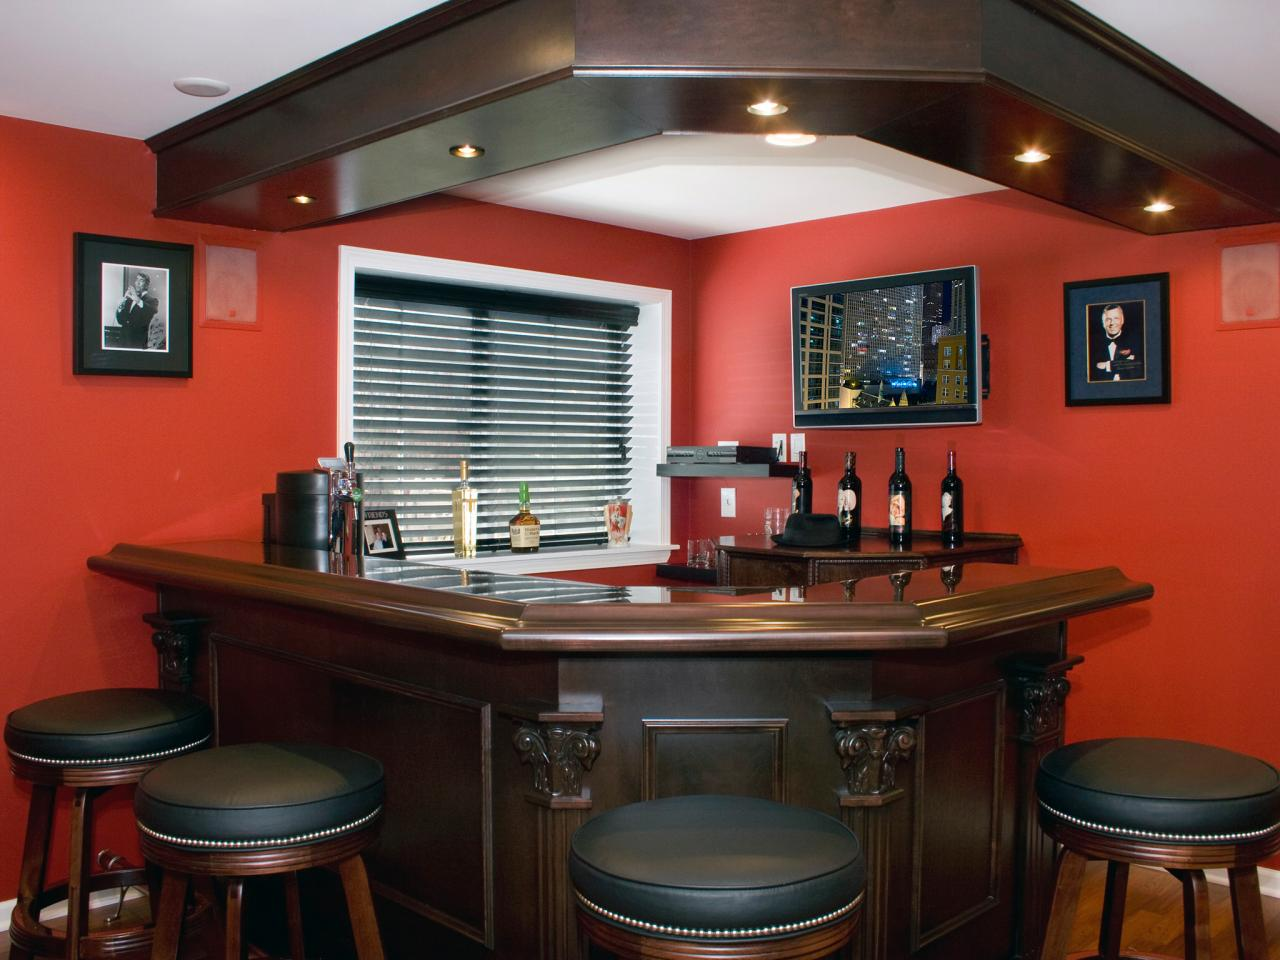 13 great design ideas for basement bars decorating and design ideas for interior rooms hgtv - Cool home bar ideas ...